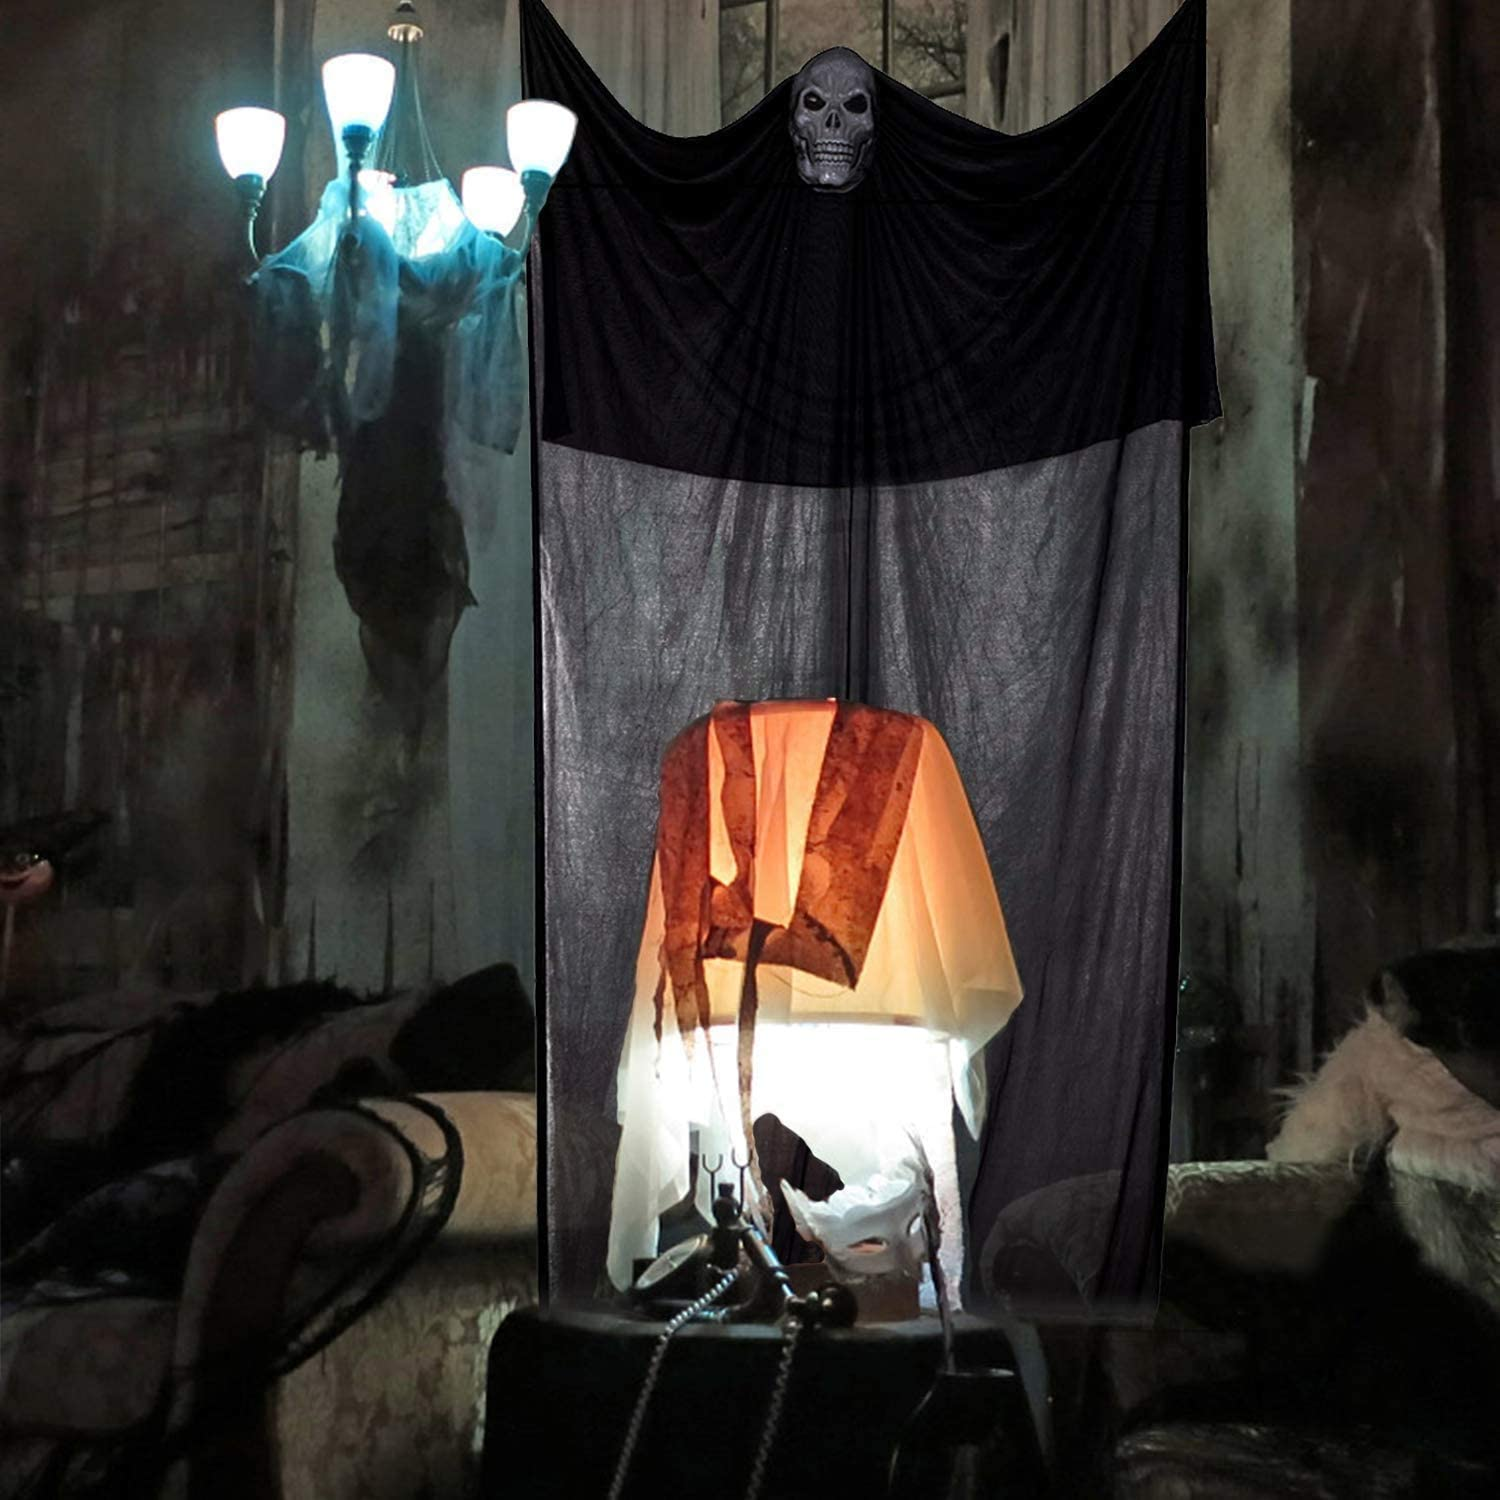 Ucradle 12.47Ft Halloween Decoration Hanging Ghost Flying Skeleton Scary Halloween Decorations Witch Skeleton/Curtain for Outdoor Indoor Haunted House Party Bar Garden Black